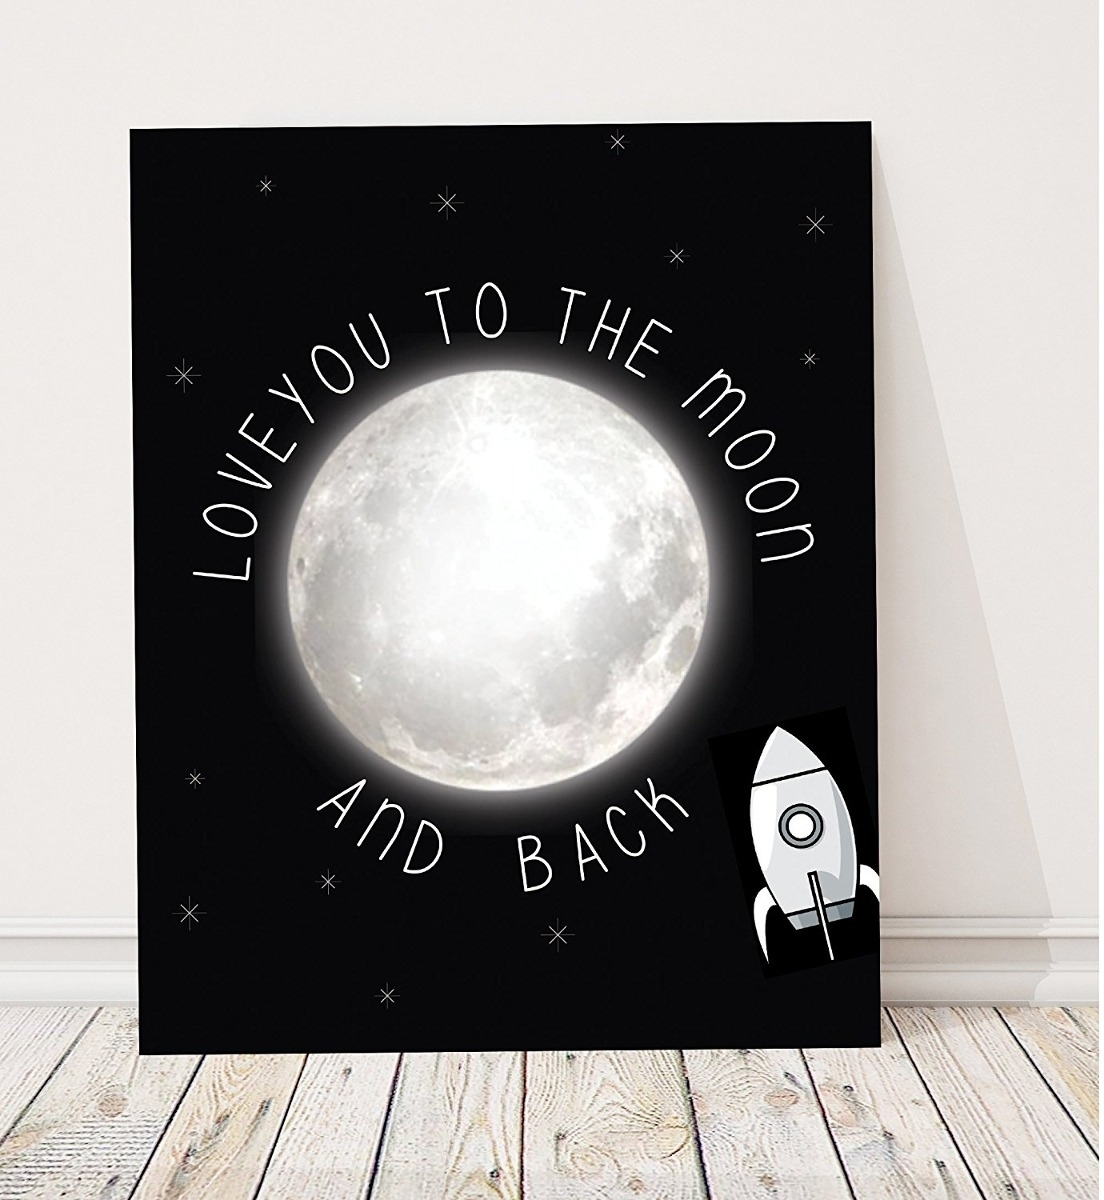 Love You To The Moon And Back Children's Wall Art Print 11x1 Within Current I Love You To The Moon And Back Wall Art (View 12 of 20)